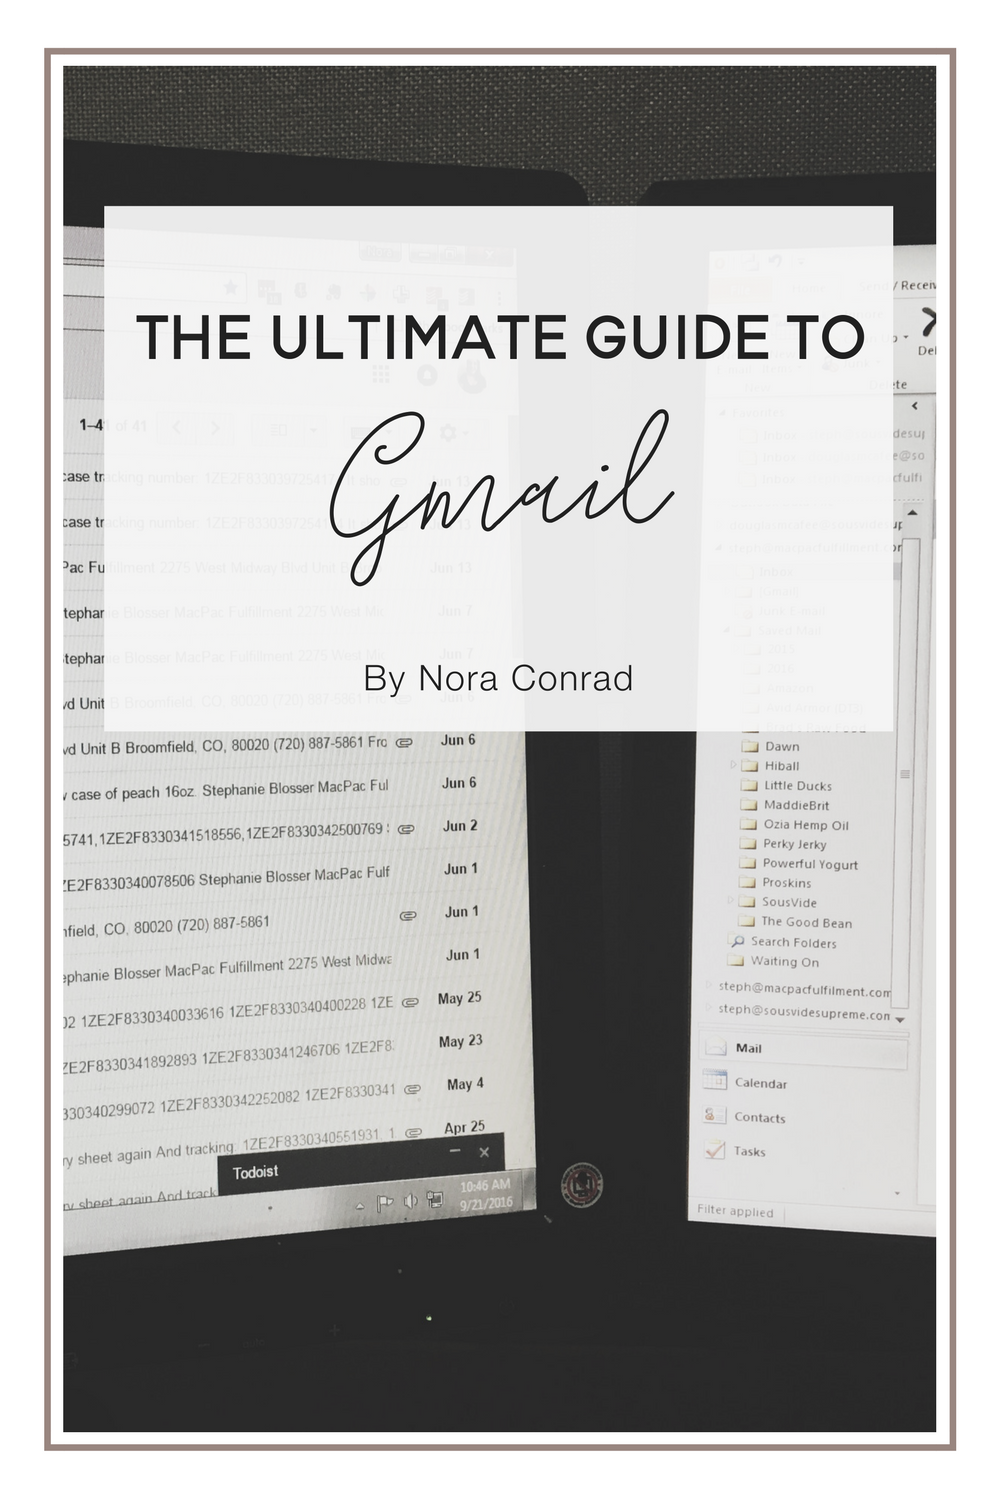 If you're sick of an overflowing inbox, it's time to switch to Gmail and get your emails under control. In this complete guide, I'll show you how to use Gmail for all your accounts and get to inbox zero every single day. It's easier than you'd think.